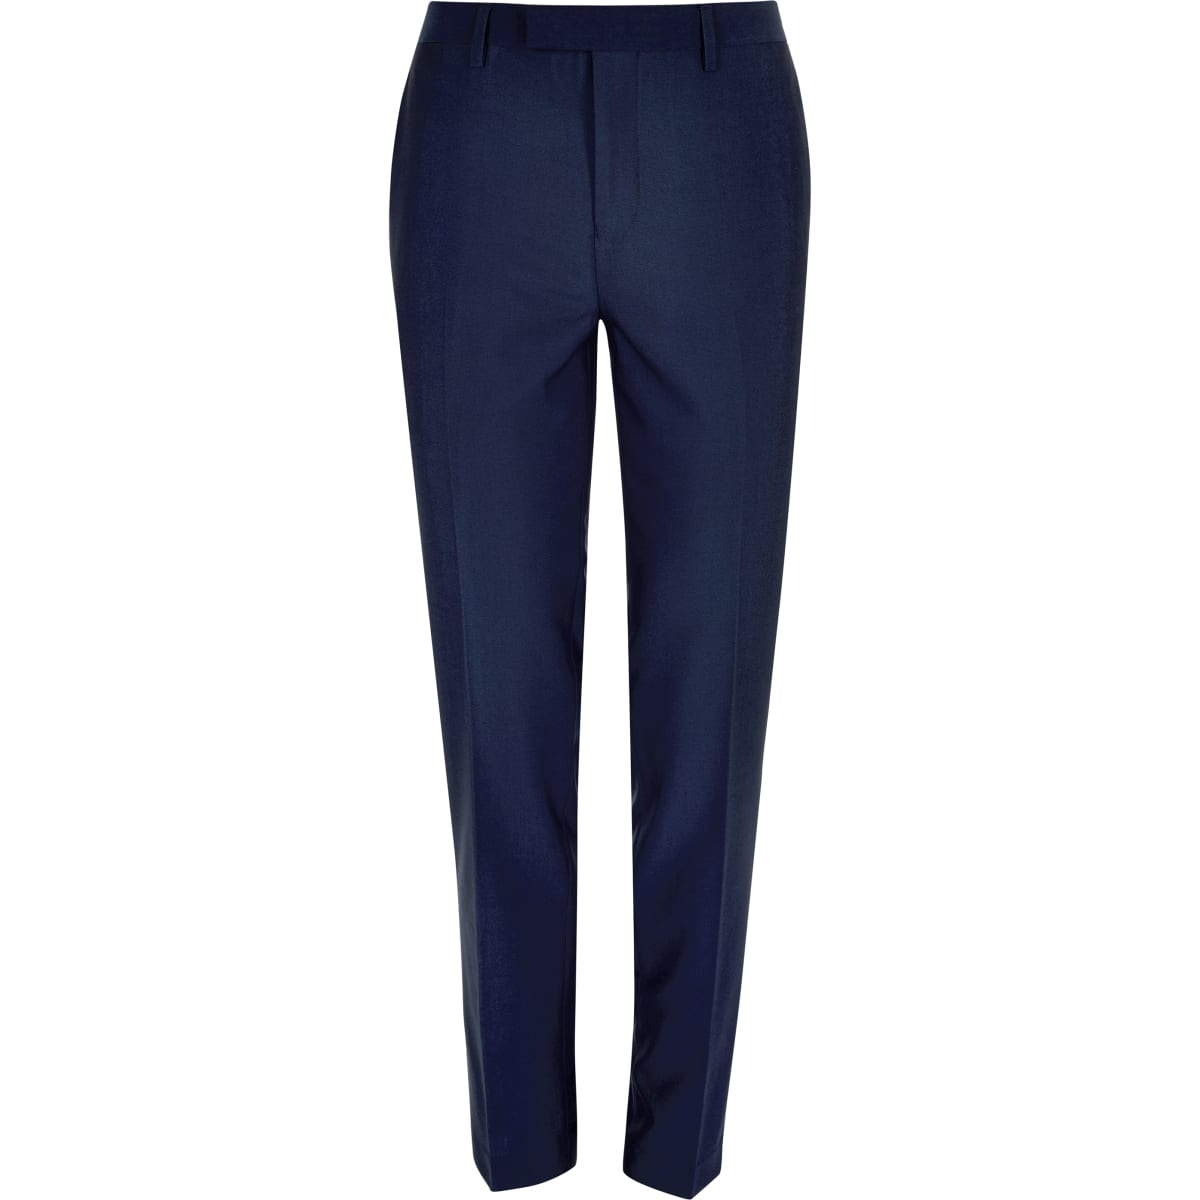 Bright blue slim suit trousers